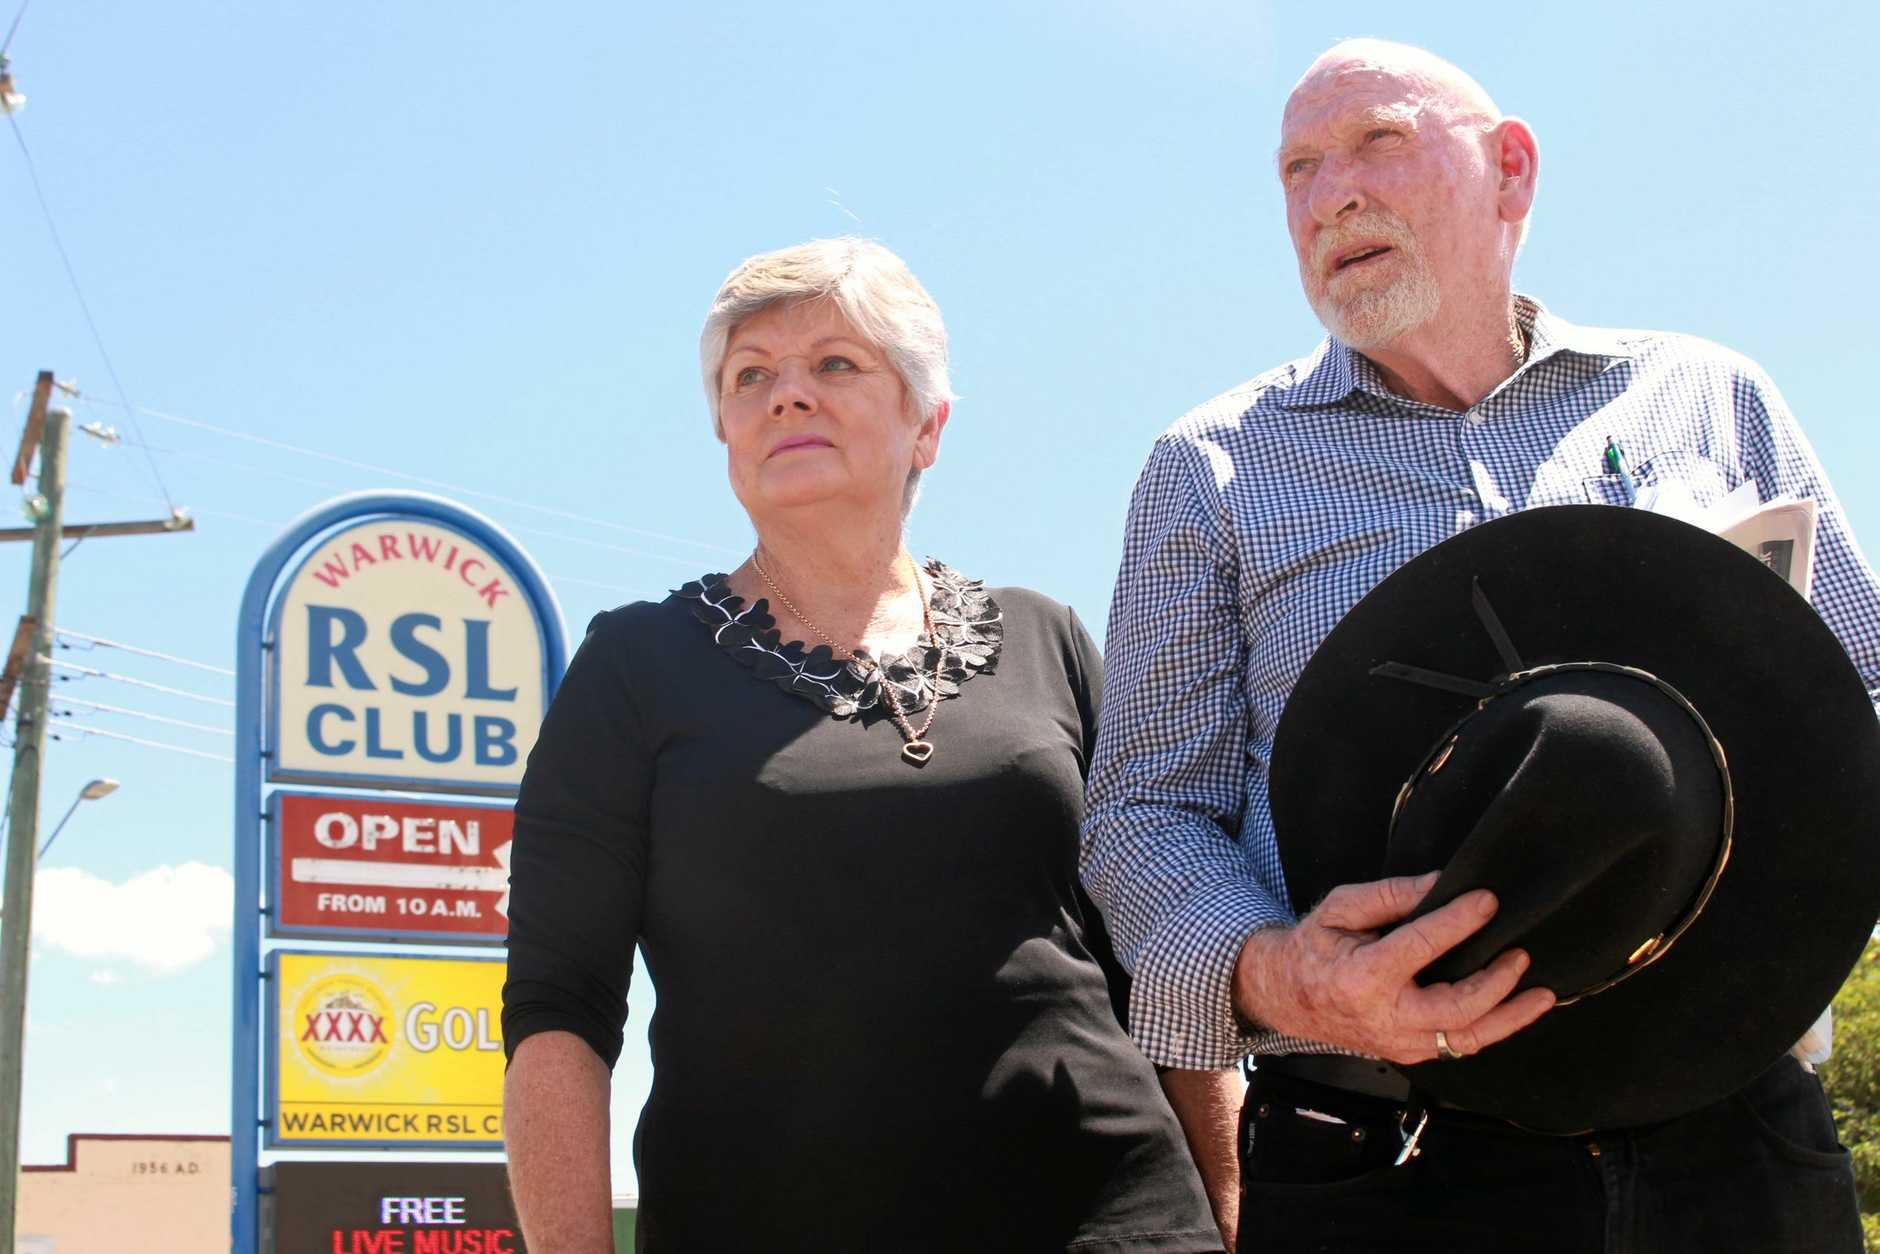 Former Warwick RSL Memorial Club committee members Lorraine Dent and Greg Linnett would be devastated to see their beloved club close.